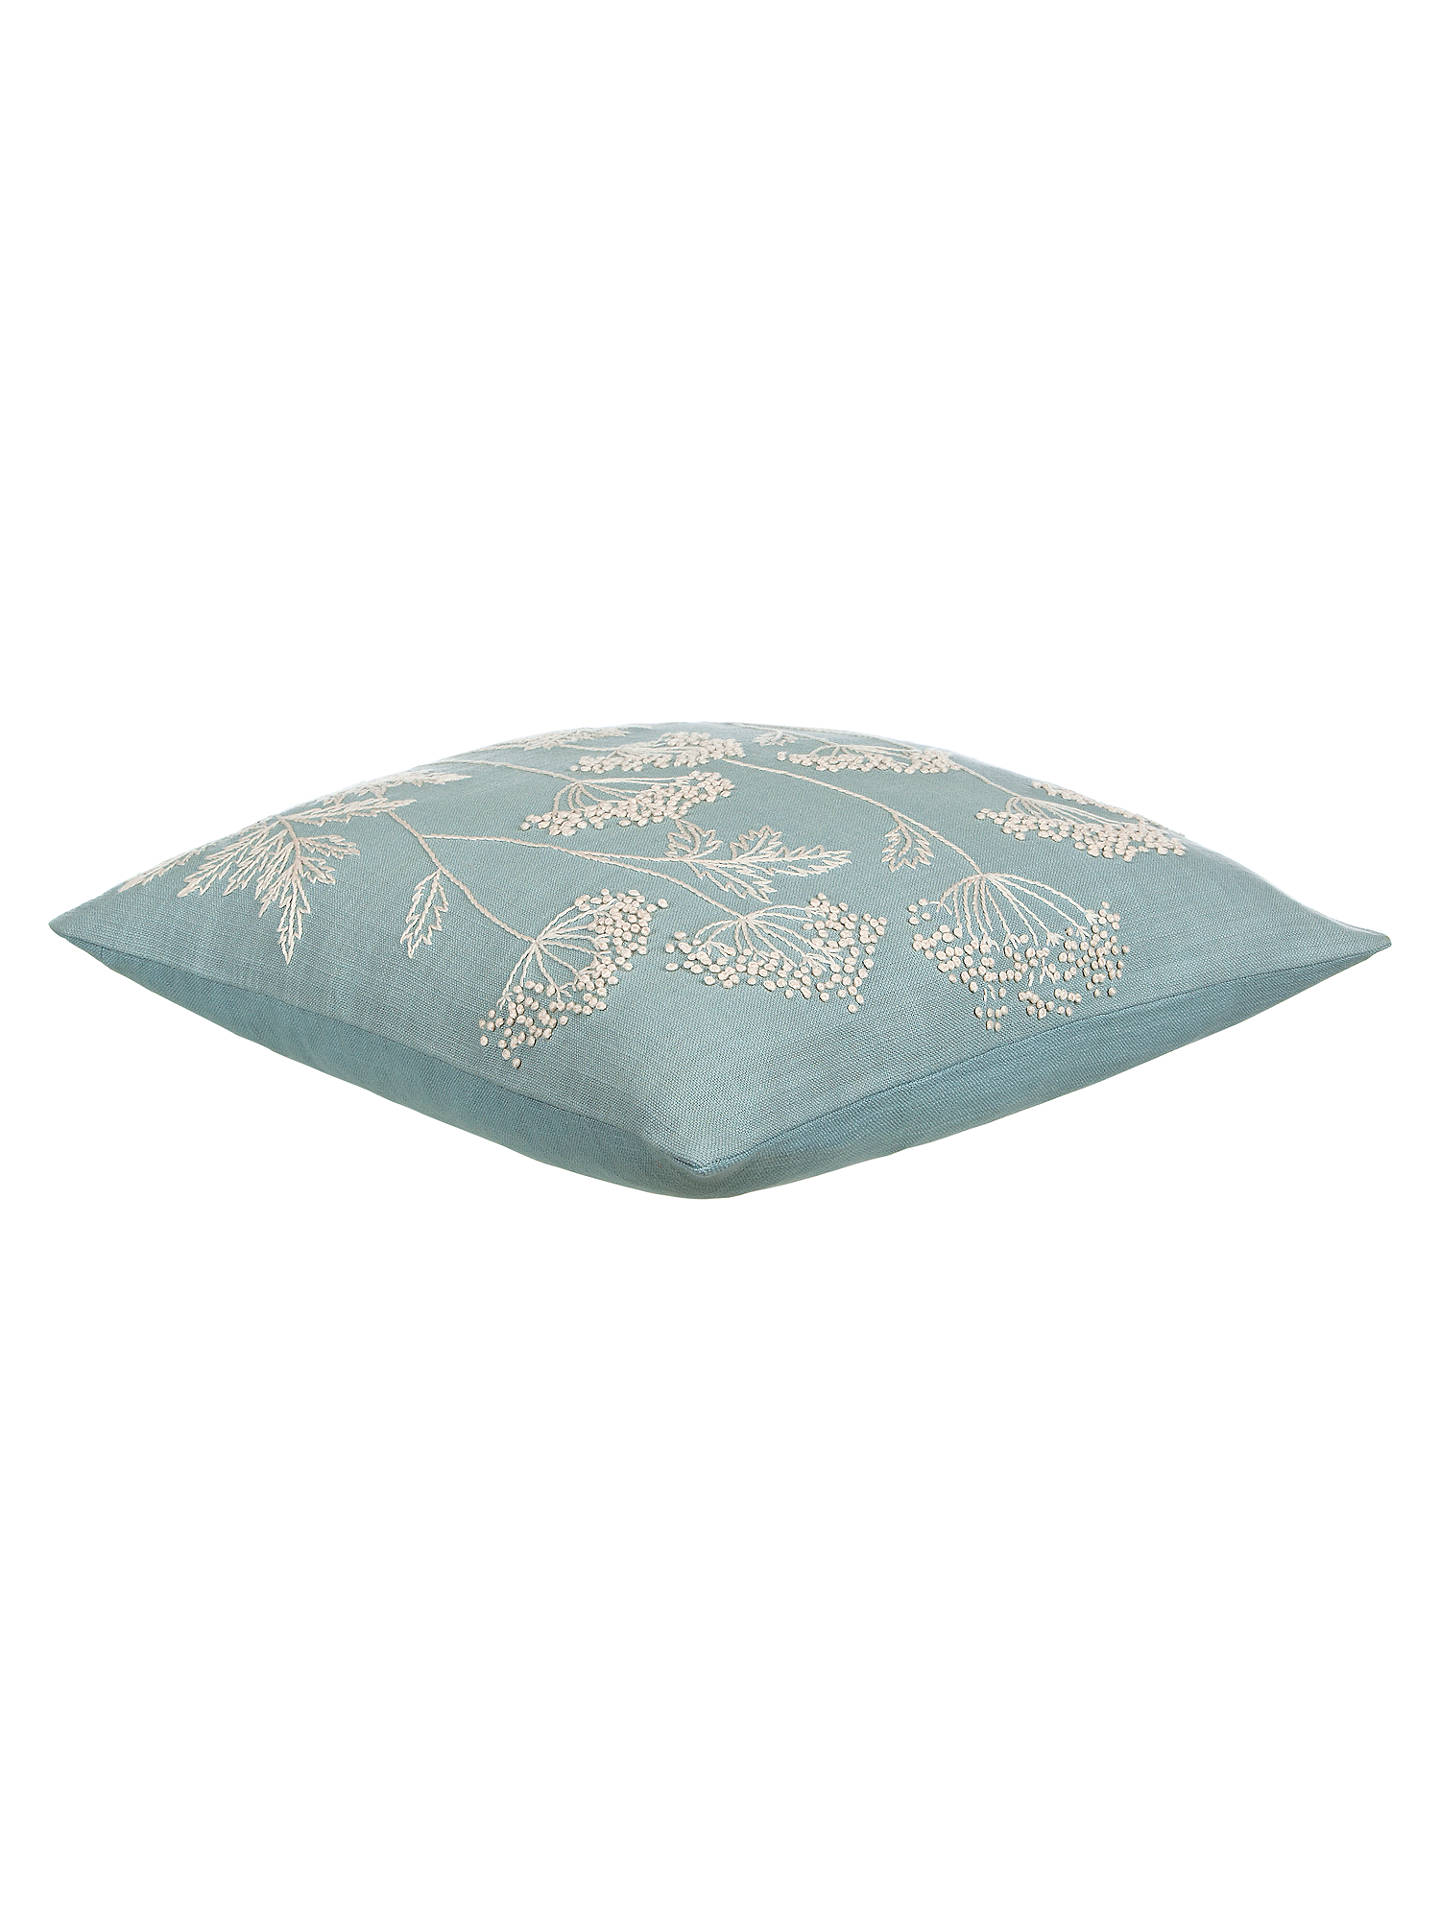 Buy John Lewis & Partners Cow Parsley Cushion, Duck Egg Online at johnlewis.com